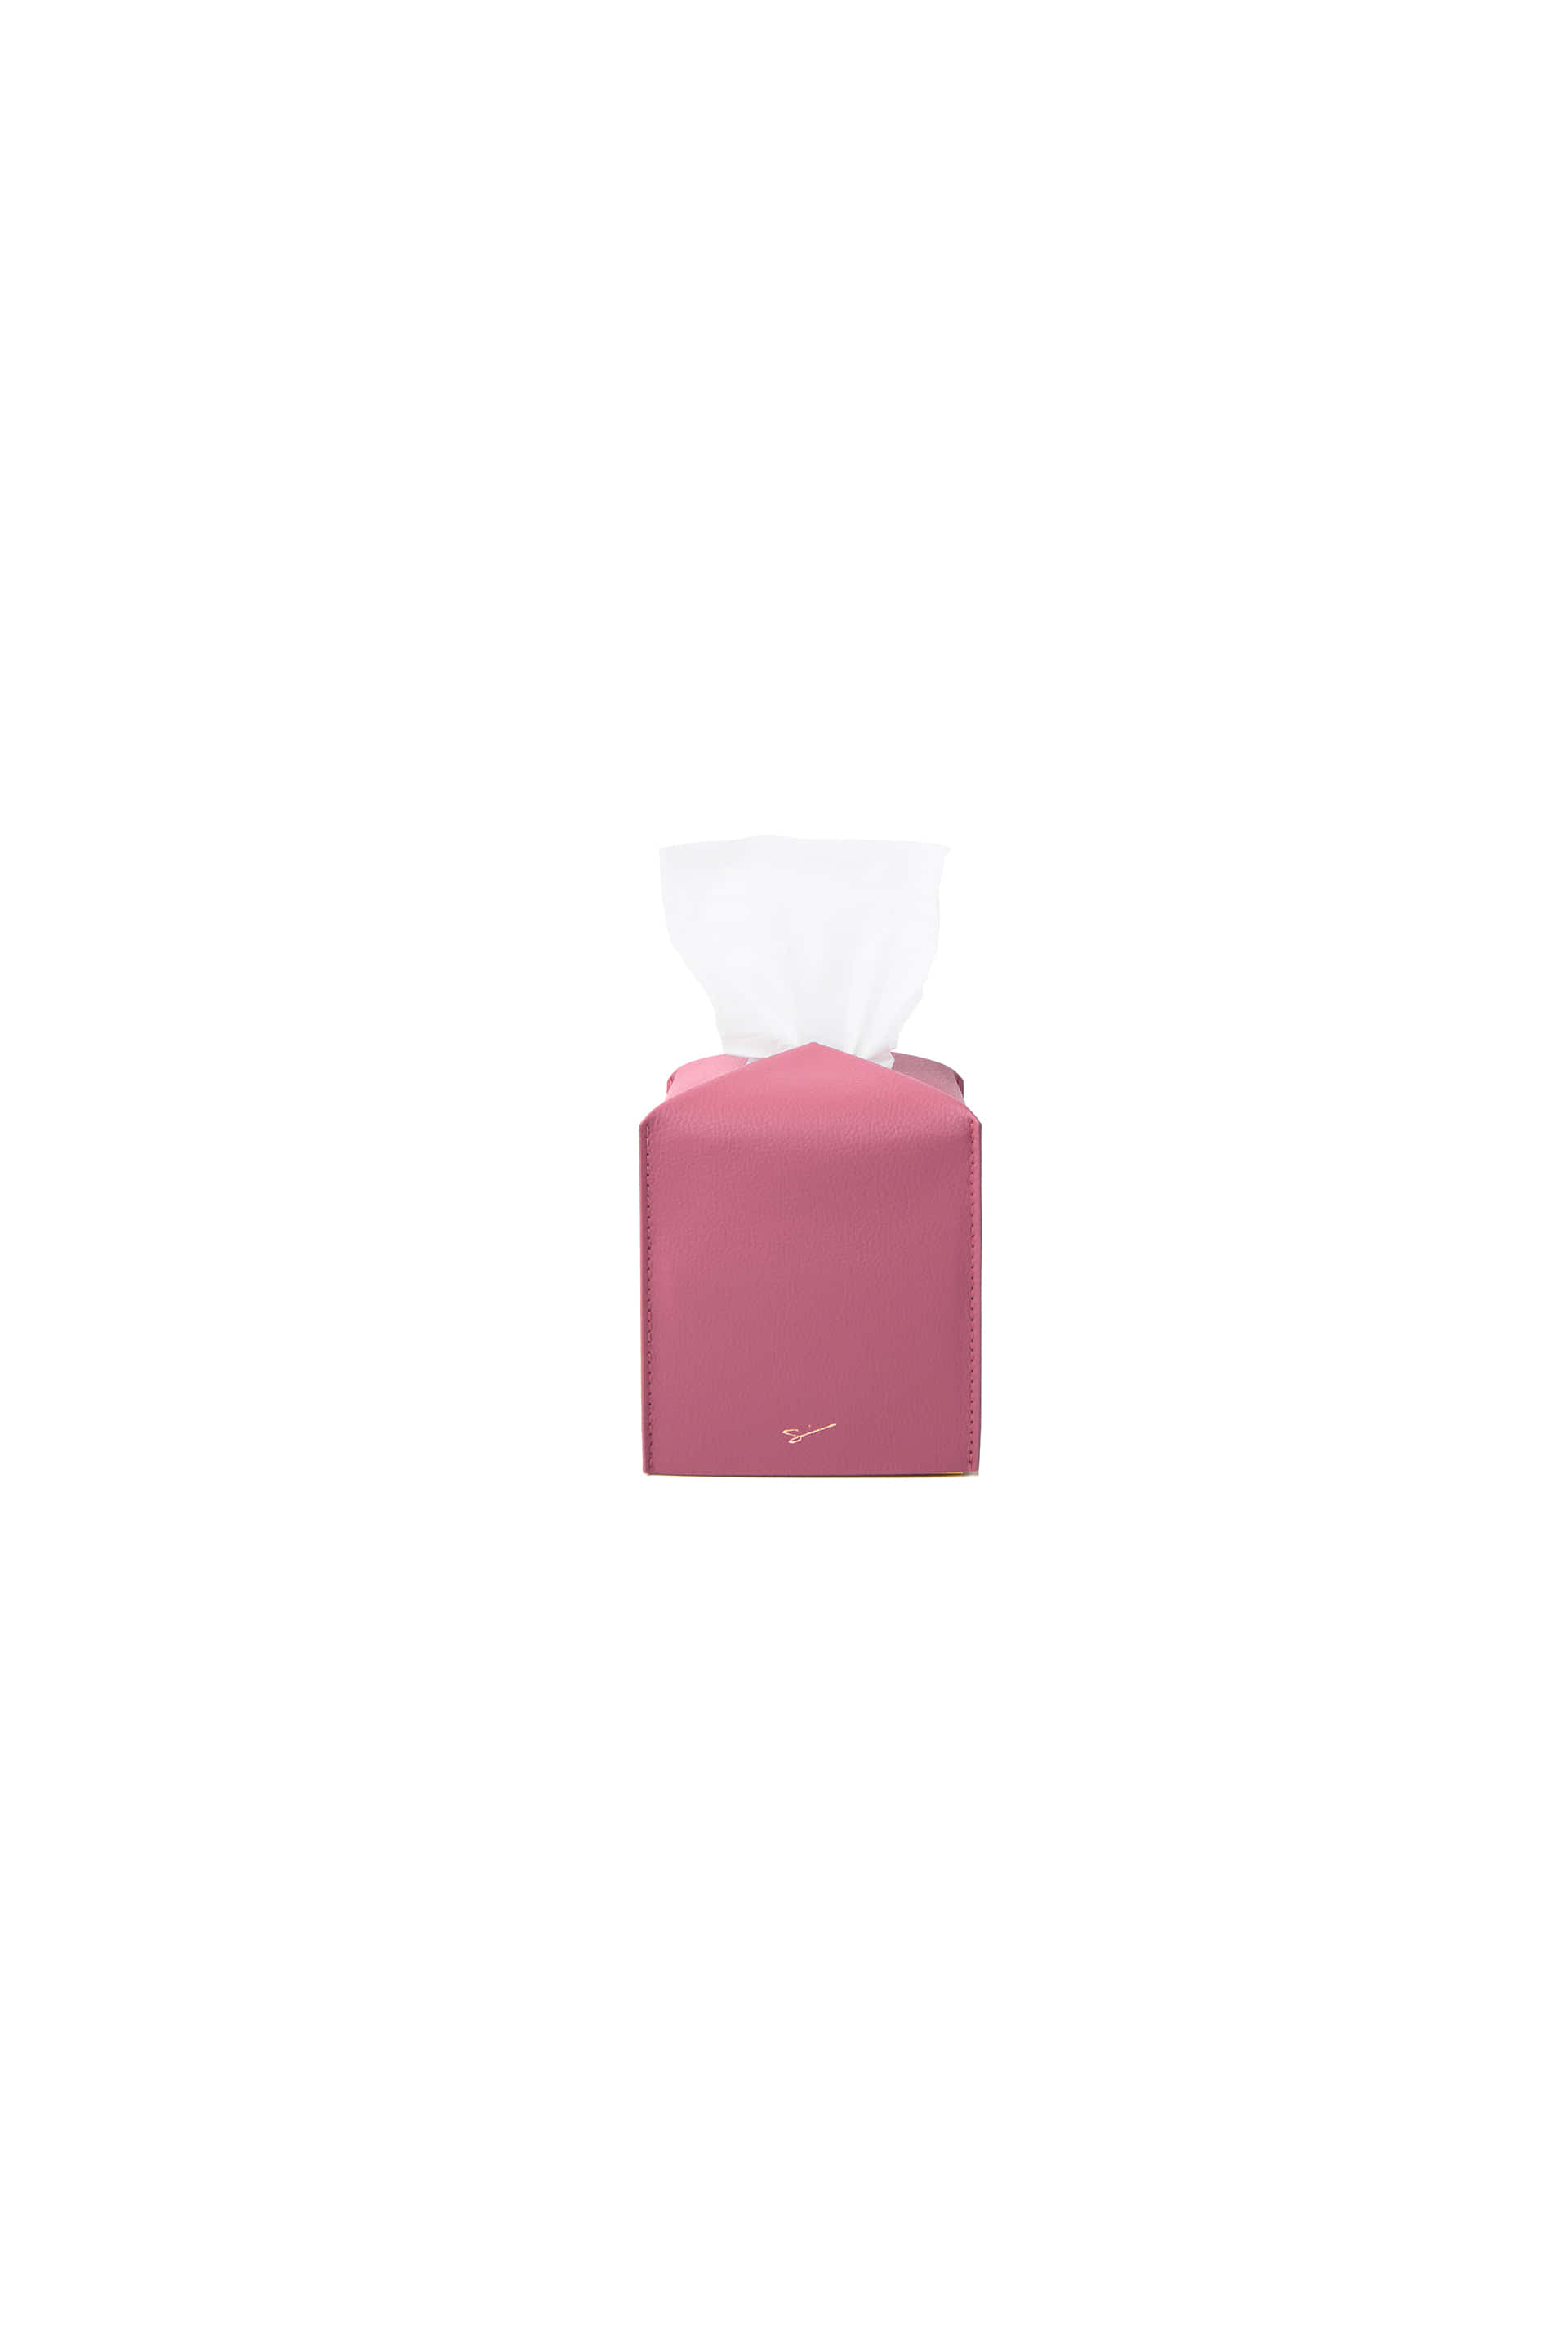 TISSUE CASE S 05 Cherry Pink